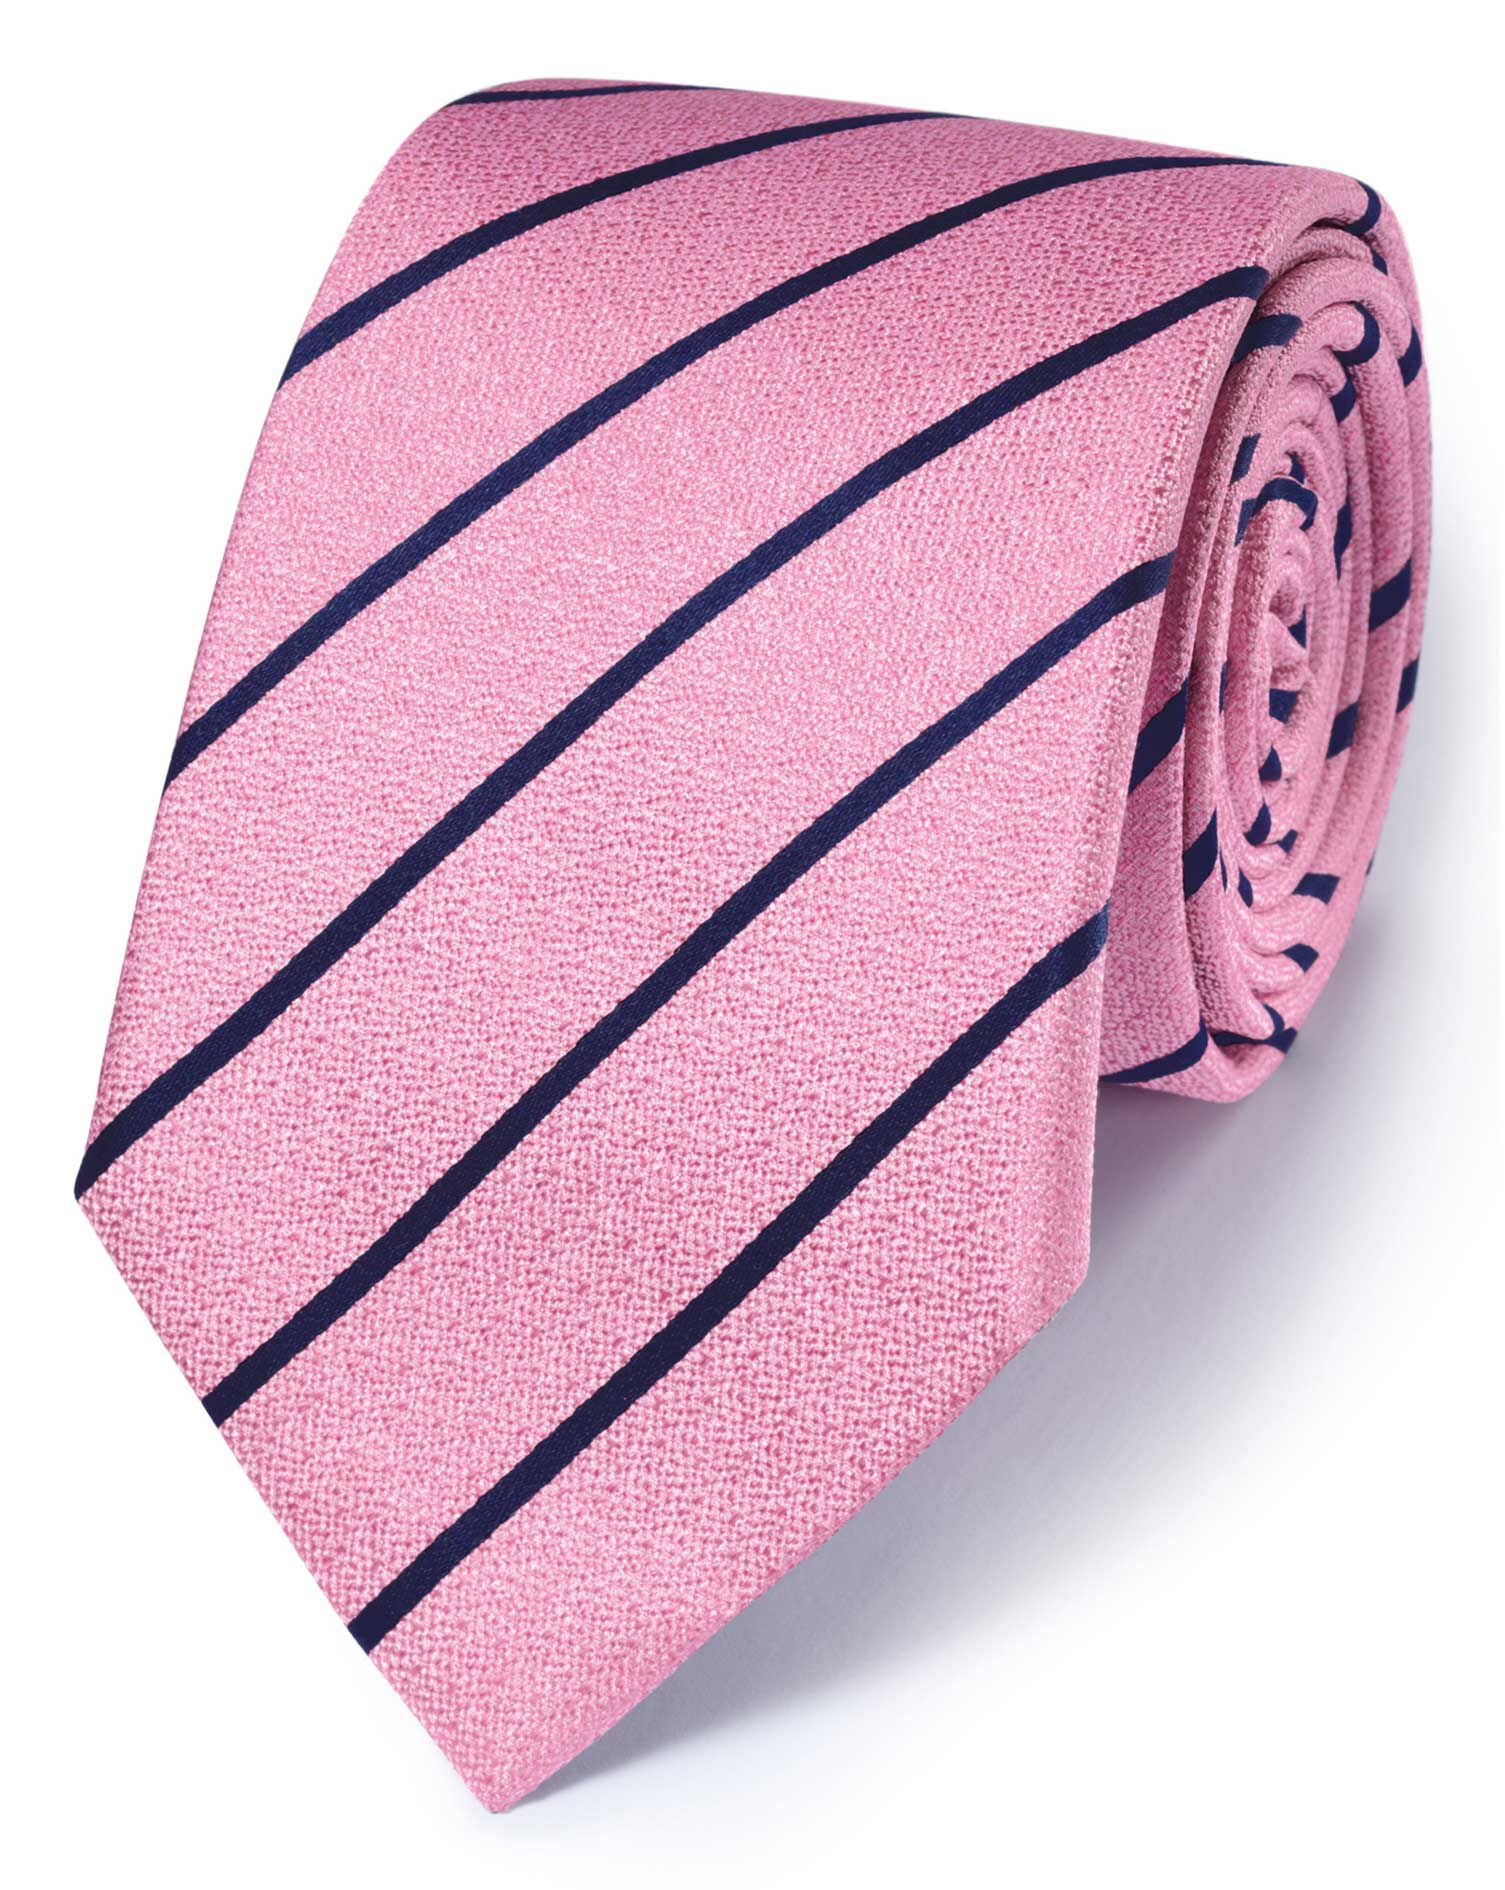 Pink and Navy Silk Classic Textured Stripe Tie Size OSFA by Charles Tyrwhitt